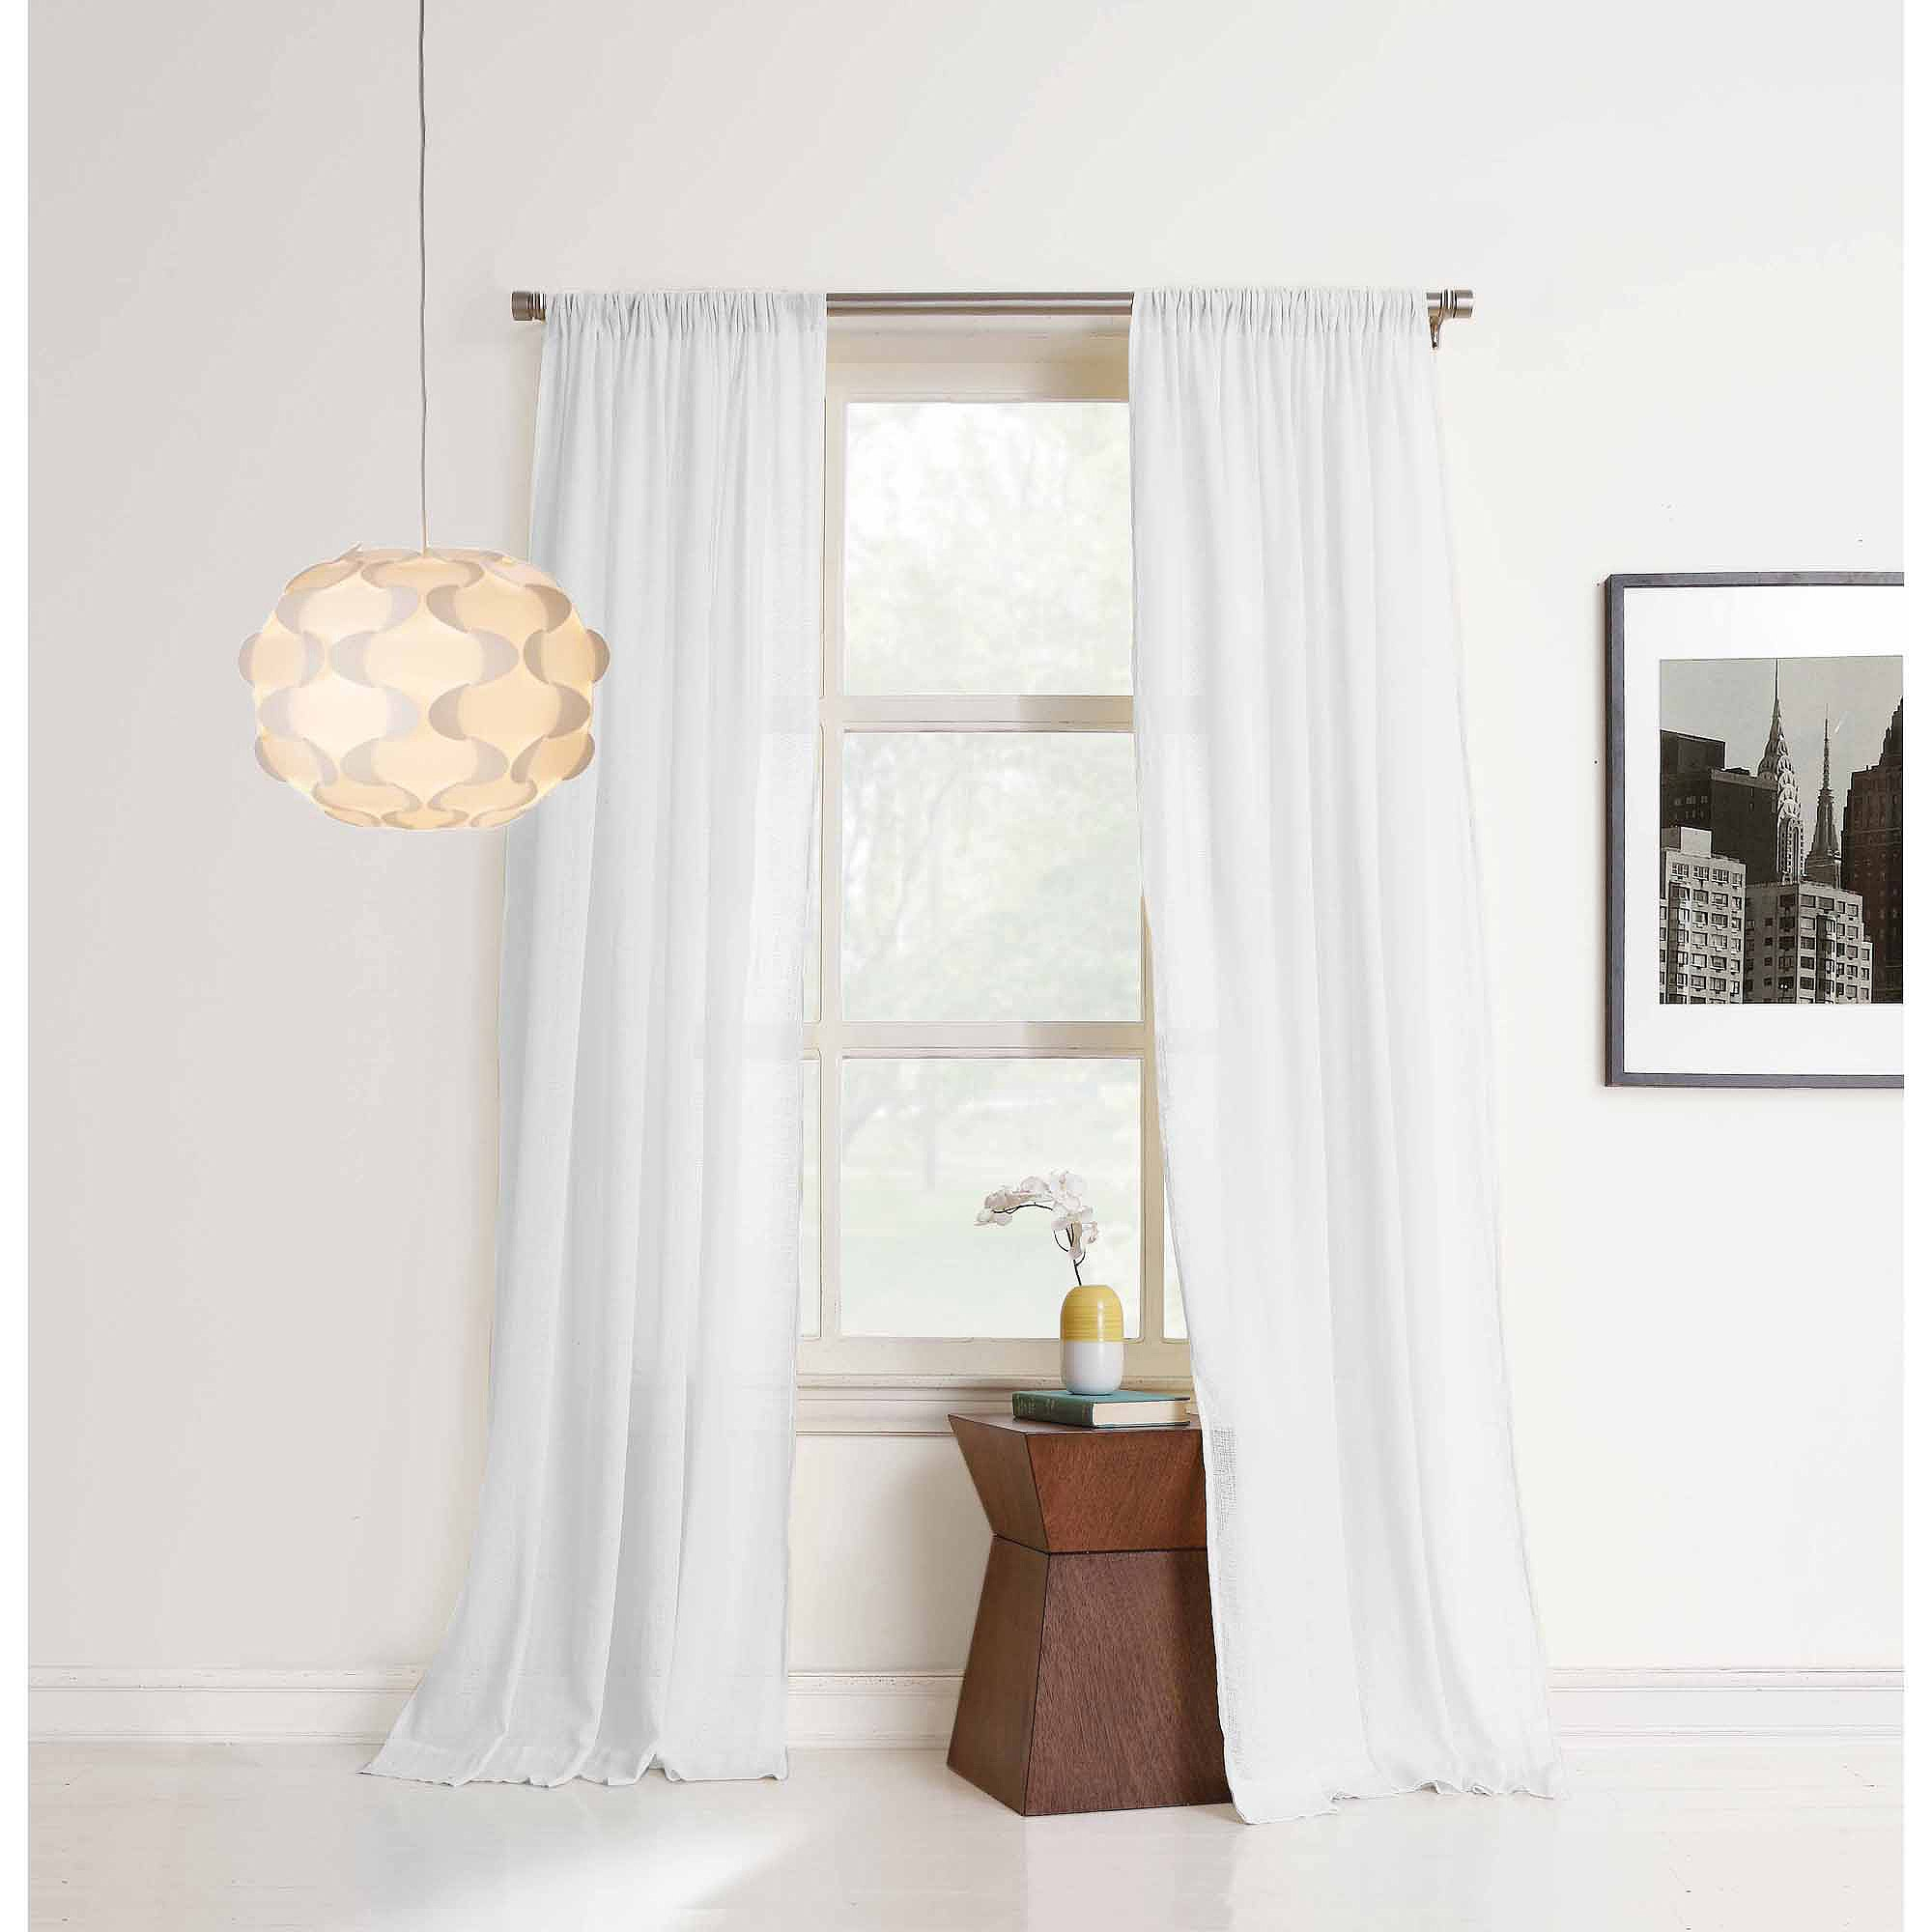 No 918 Brayden Cotton Gauze Curtain Panel Walmart Regarding White Sheer Cotton Curtains (Image 9 of 15)